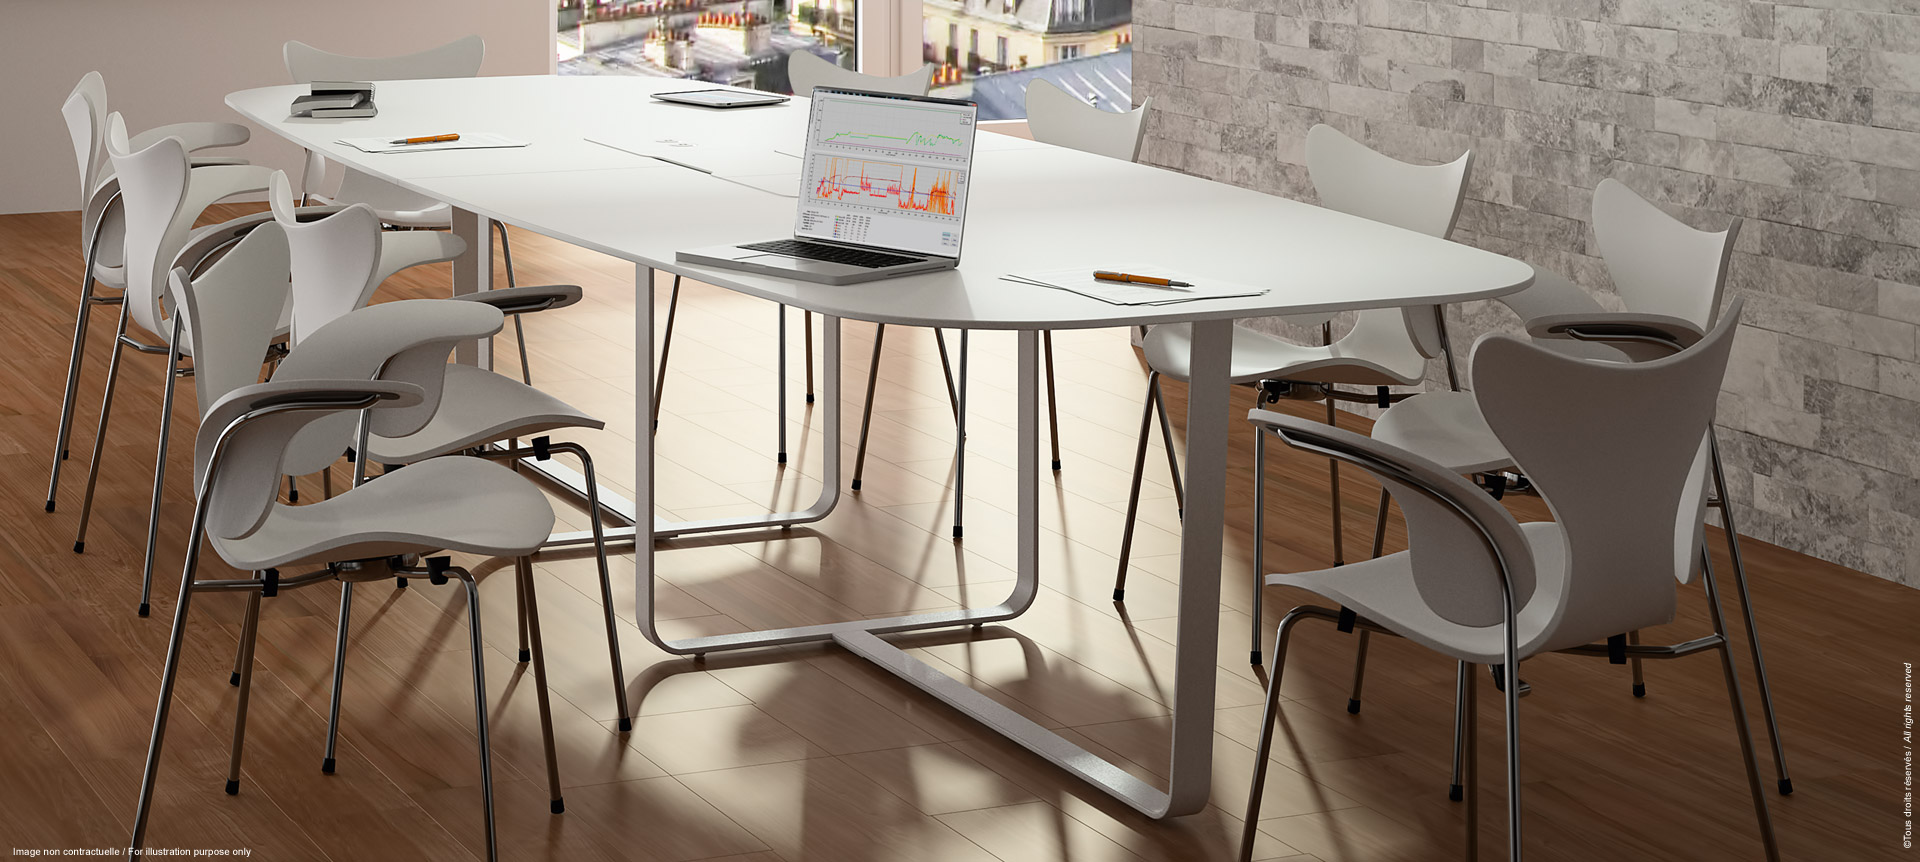 WEMEET MEETING - Design meeting table with plug access